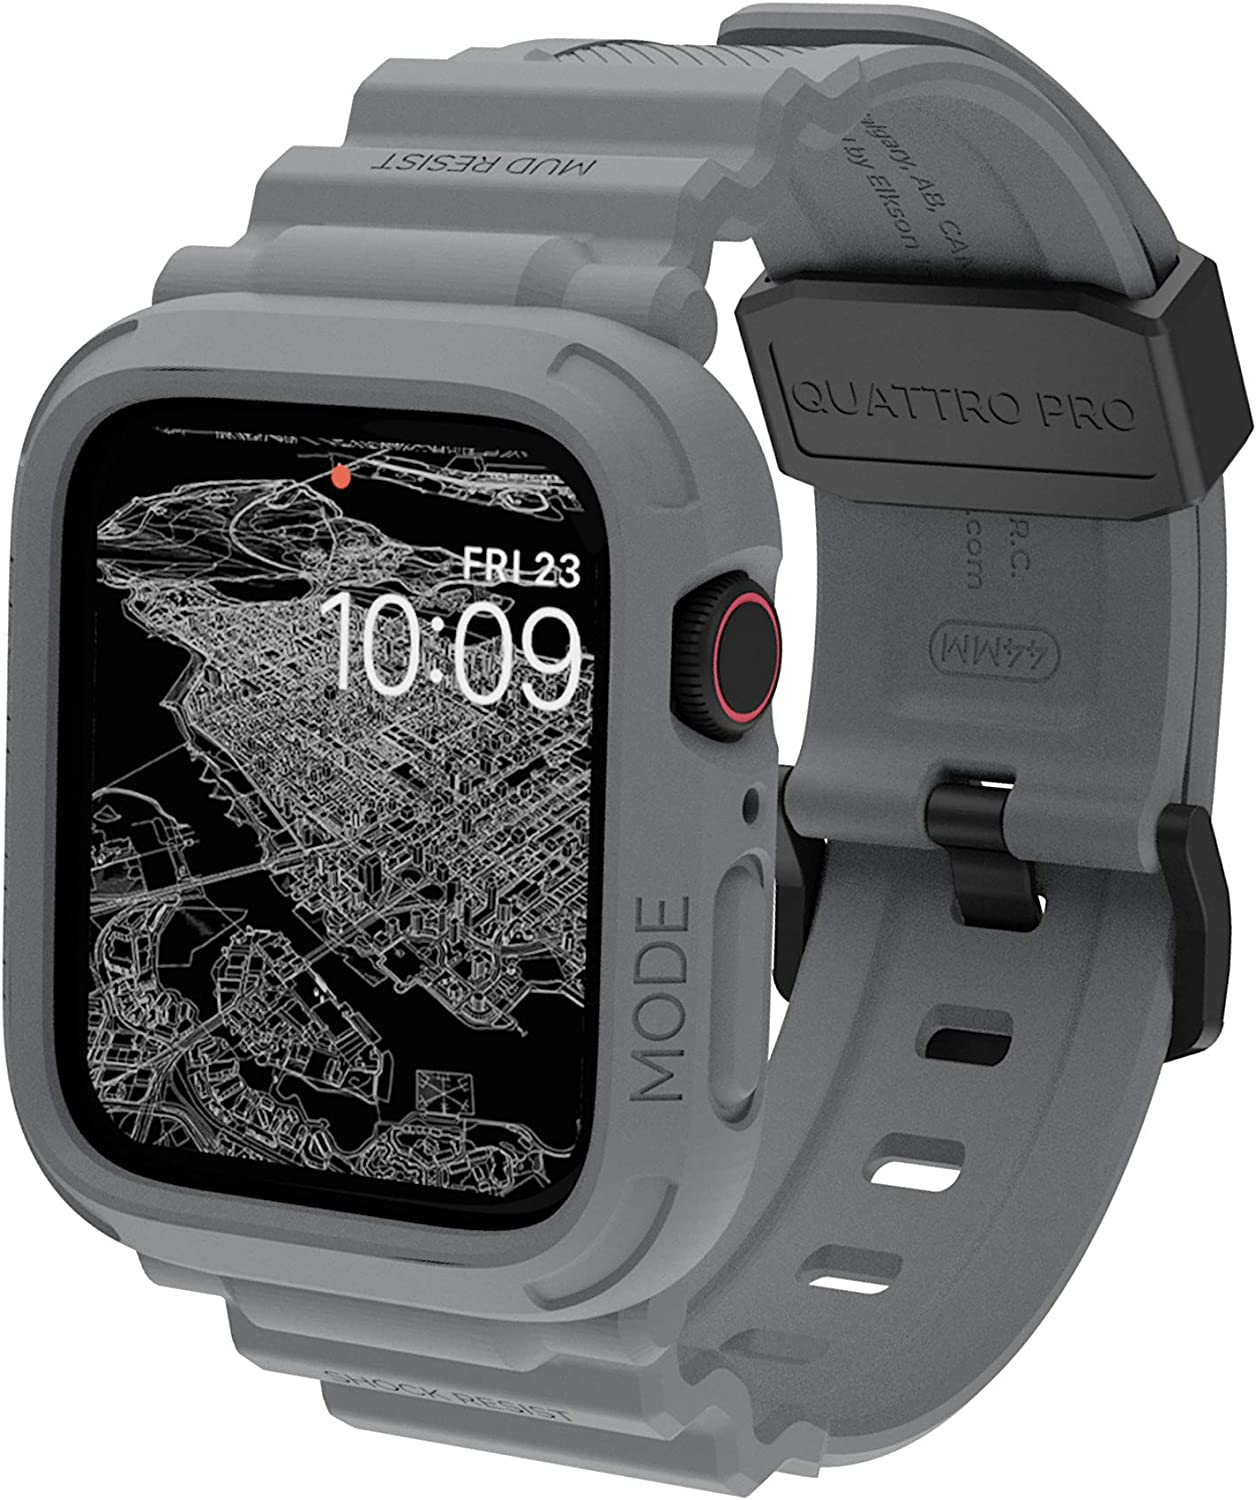 elkson Compatible with Apple Watch Series 6 SE 5 4 Bumper case Band 44mm iwatch Quattro Pro Series Fall Protection Durable Military Grade Protective TPU Mud Shock Proof Resist Men 44 mm Shark Grey